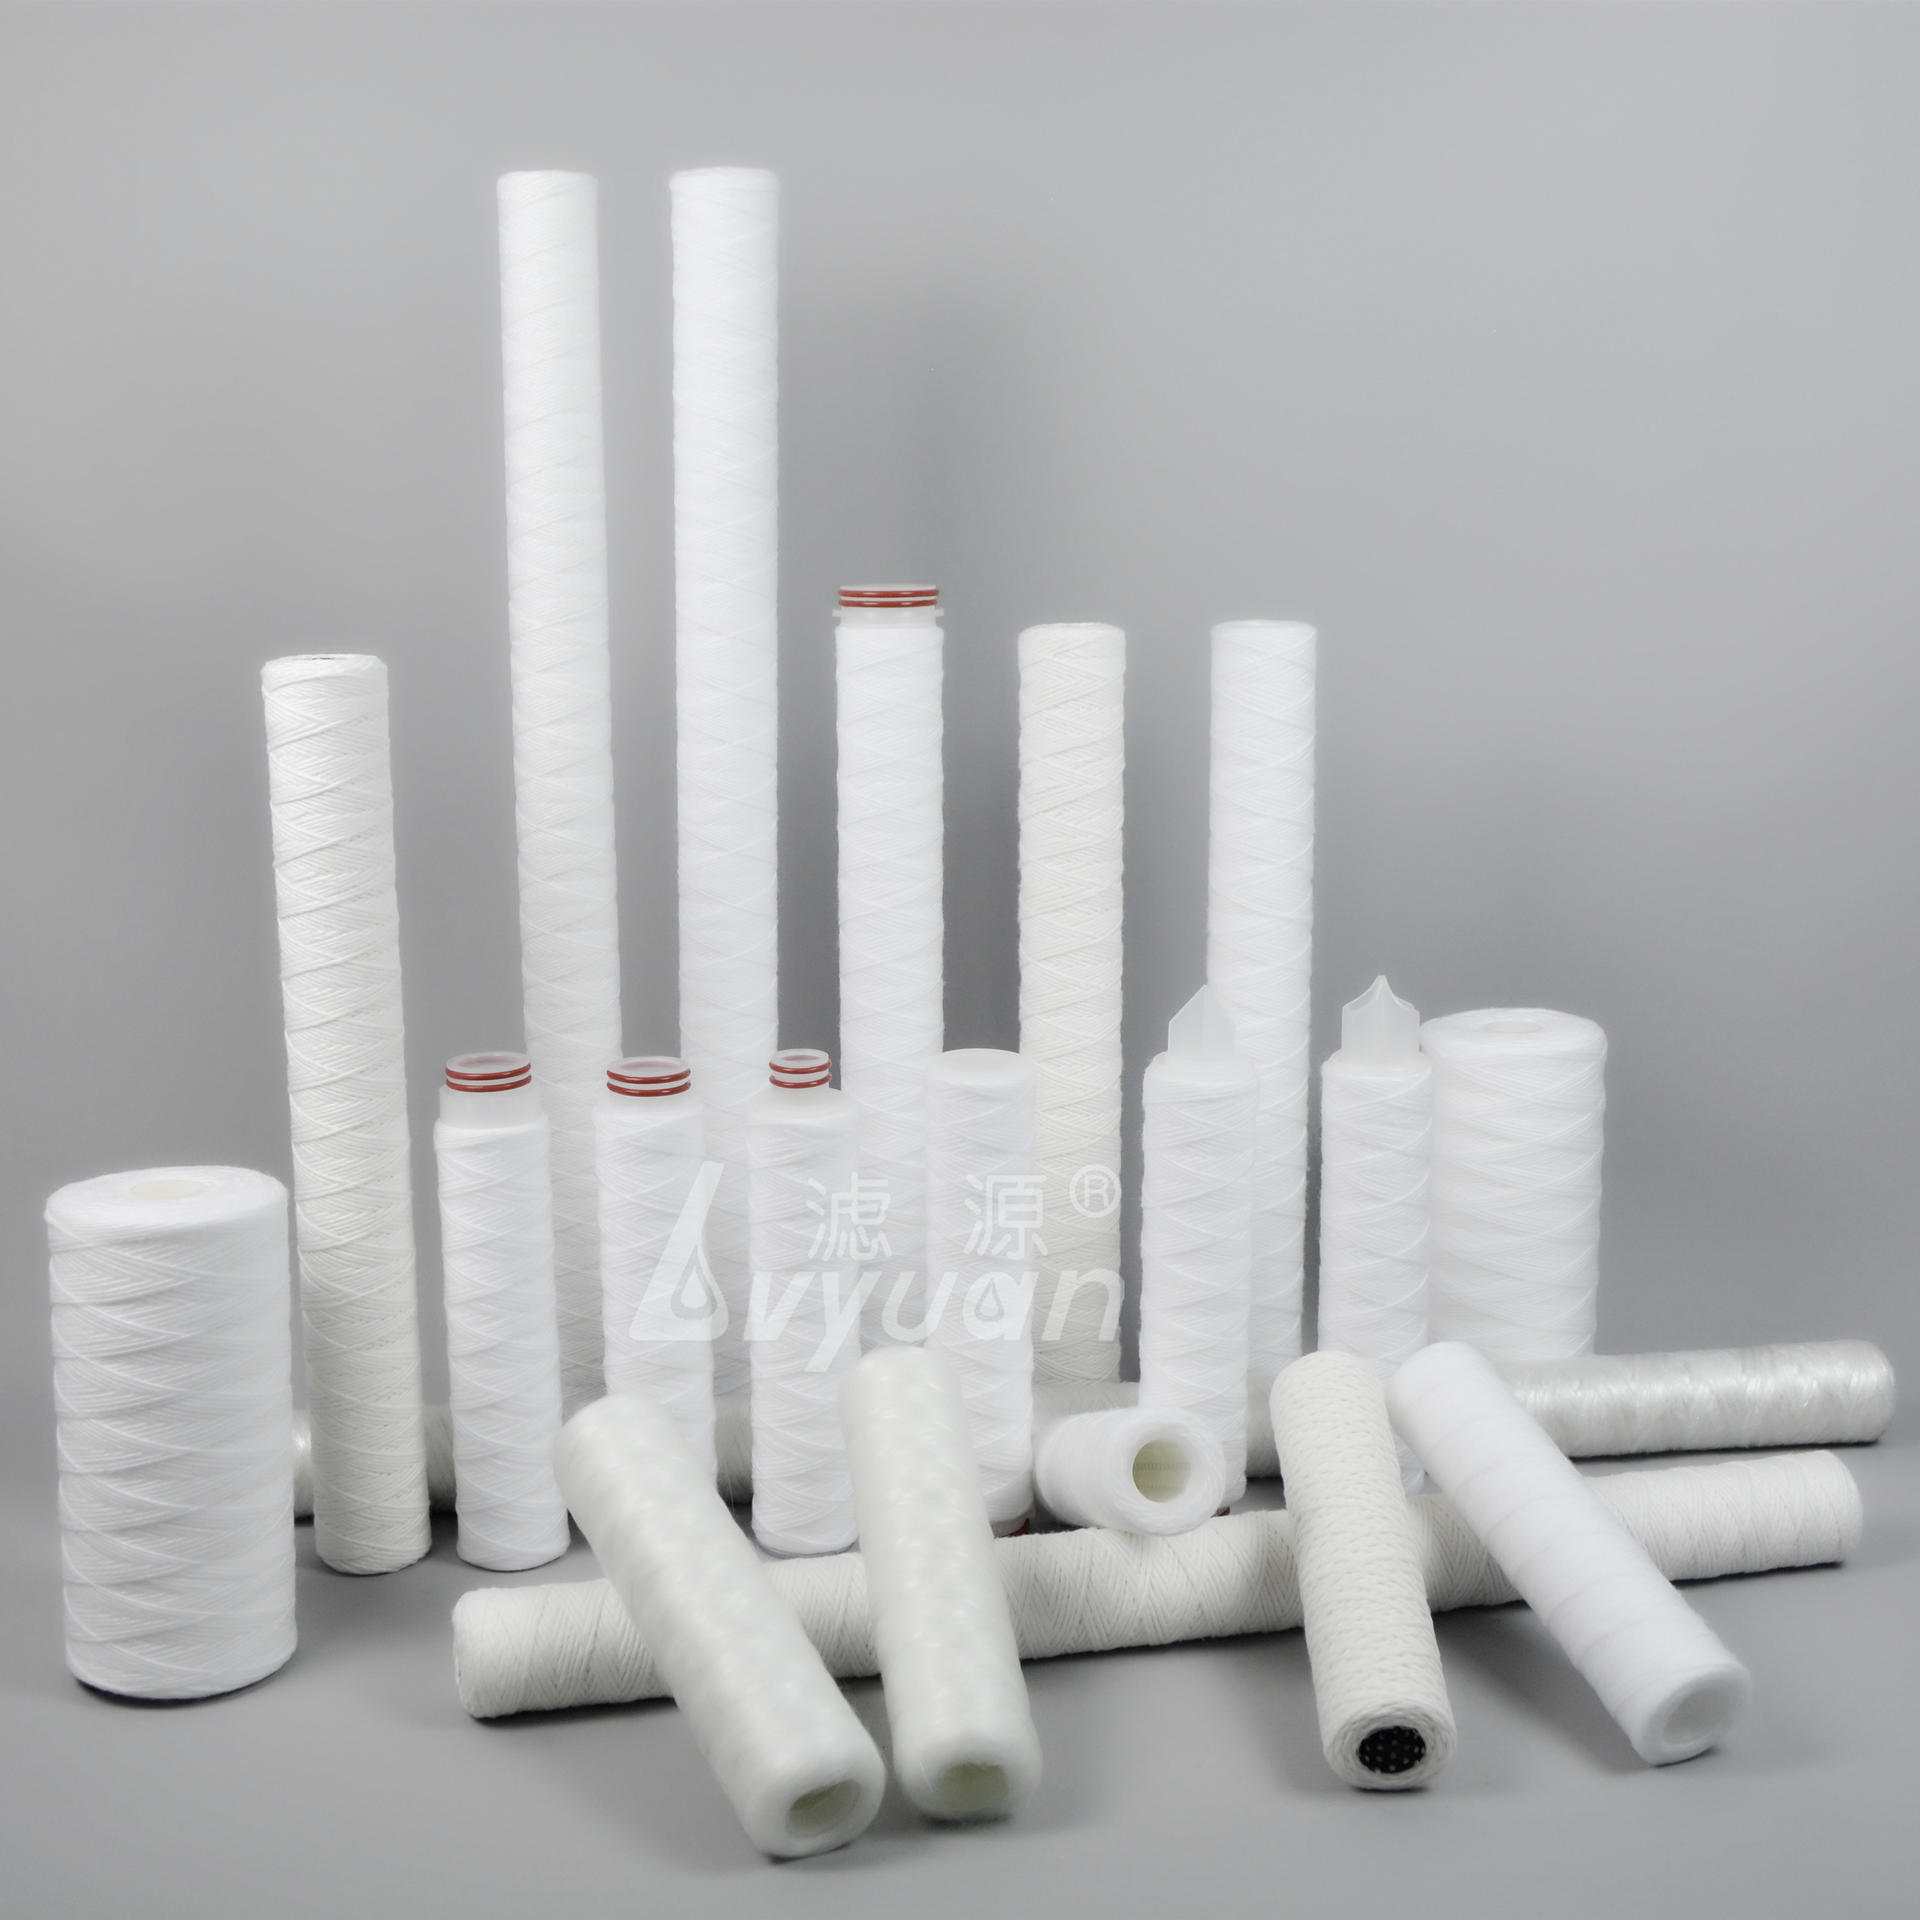 10 20 30 40 inch 50 micron spiral sediment fiberglass string wound Filter Cartridge for industrial water filtration